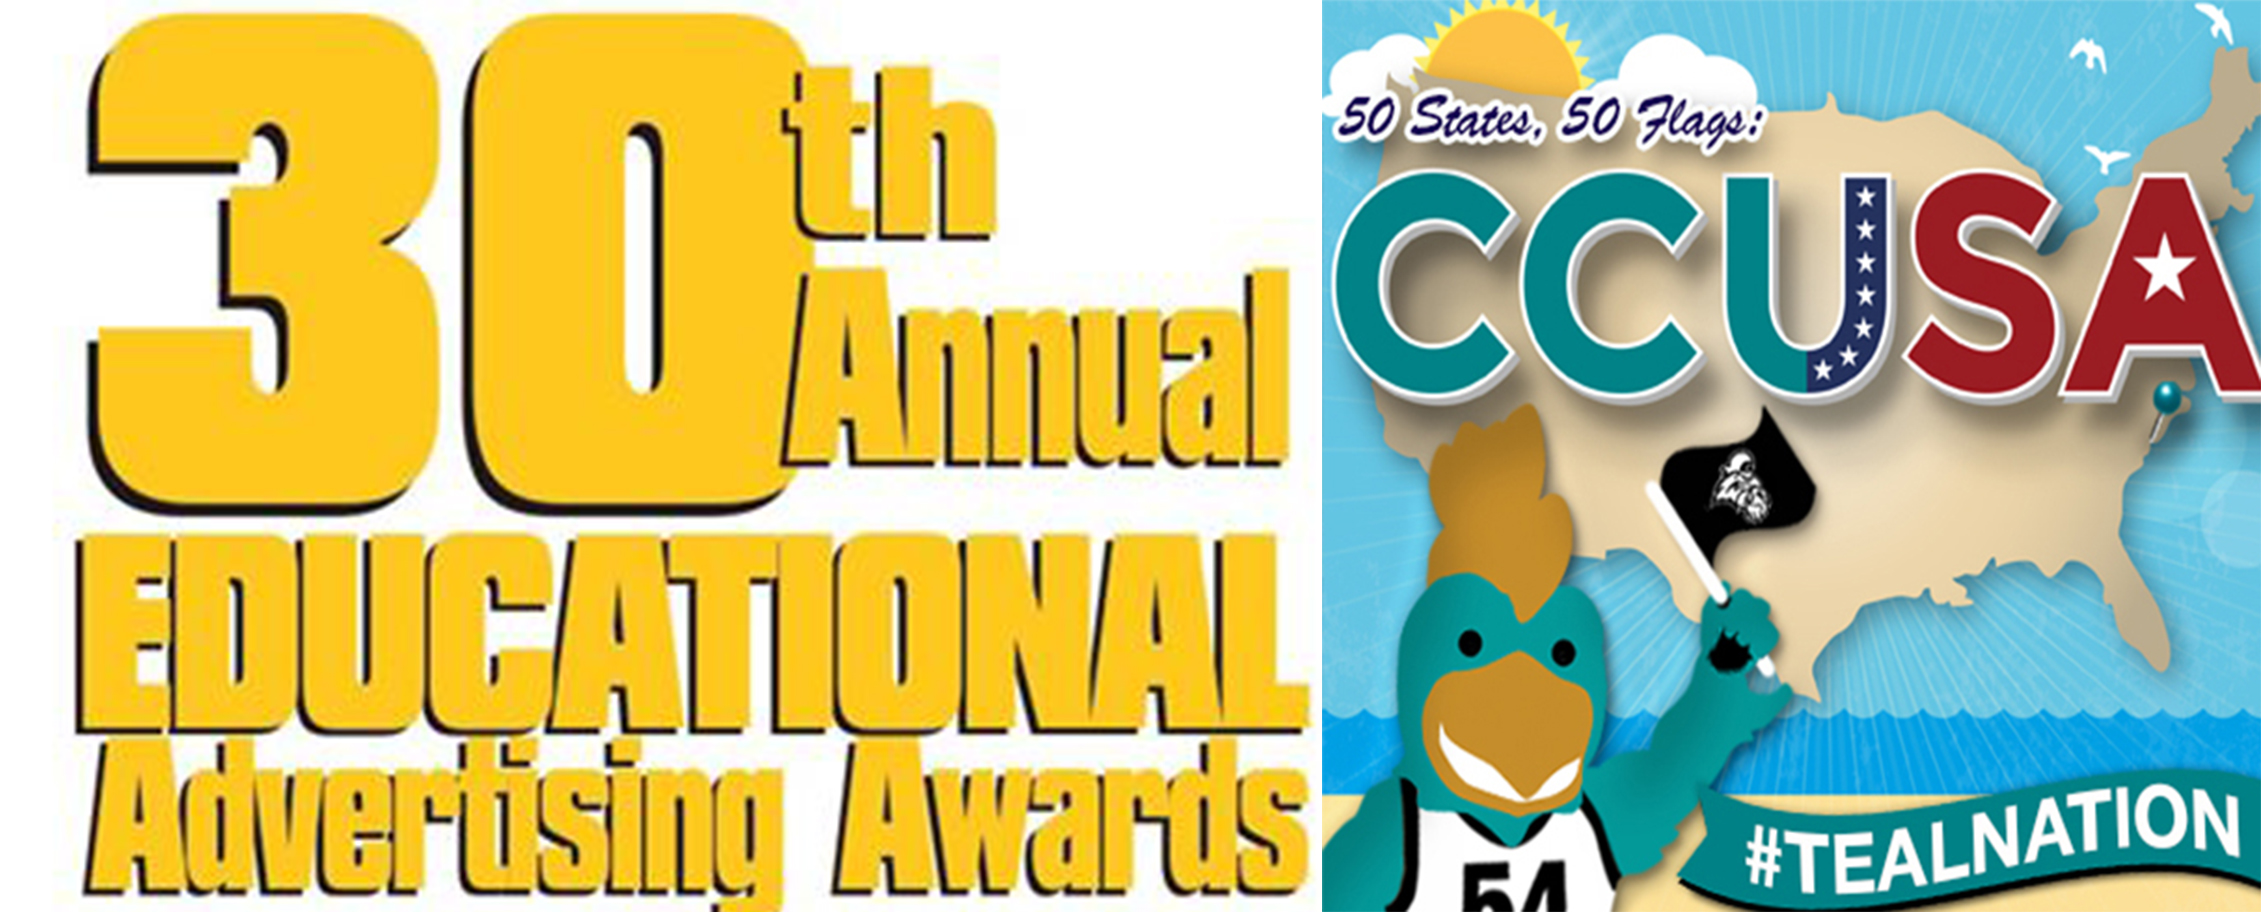 #CCUSA earned some recognition through the Educational Advertising Awards.